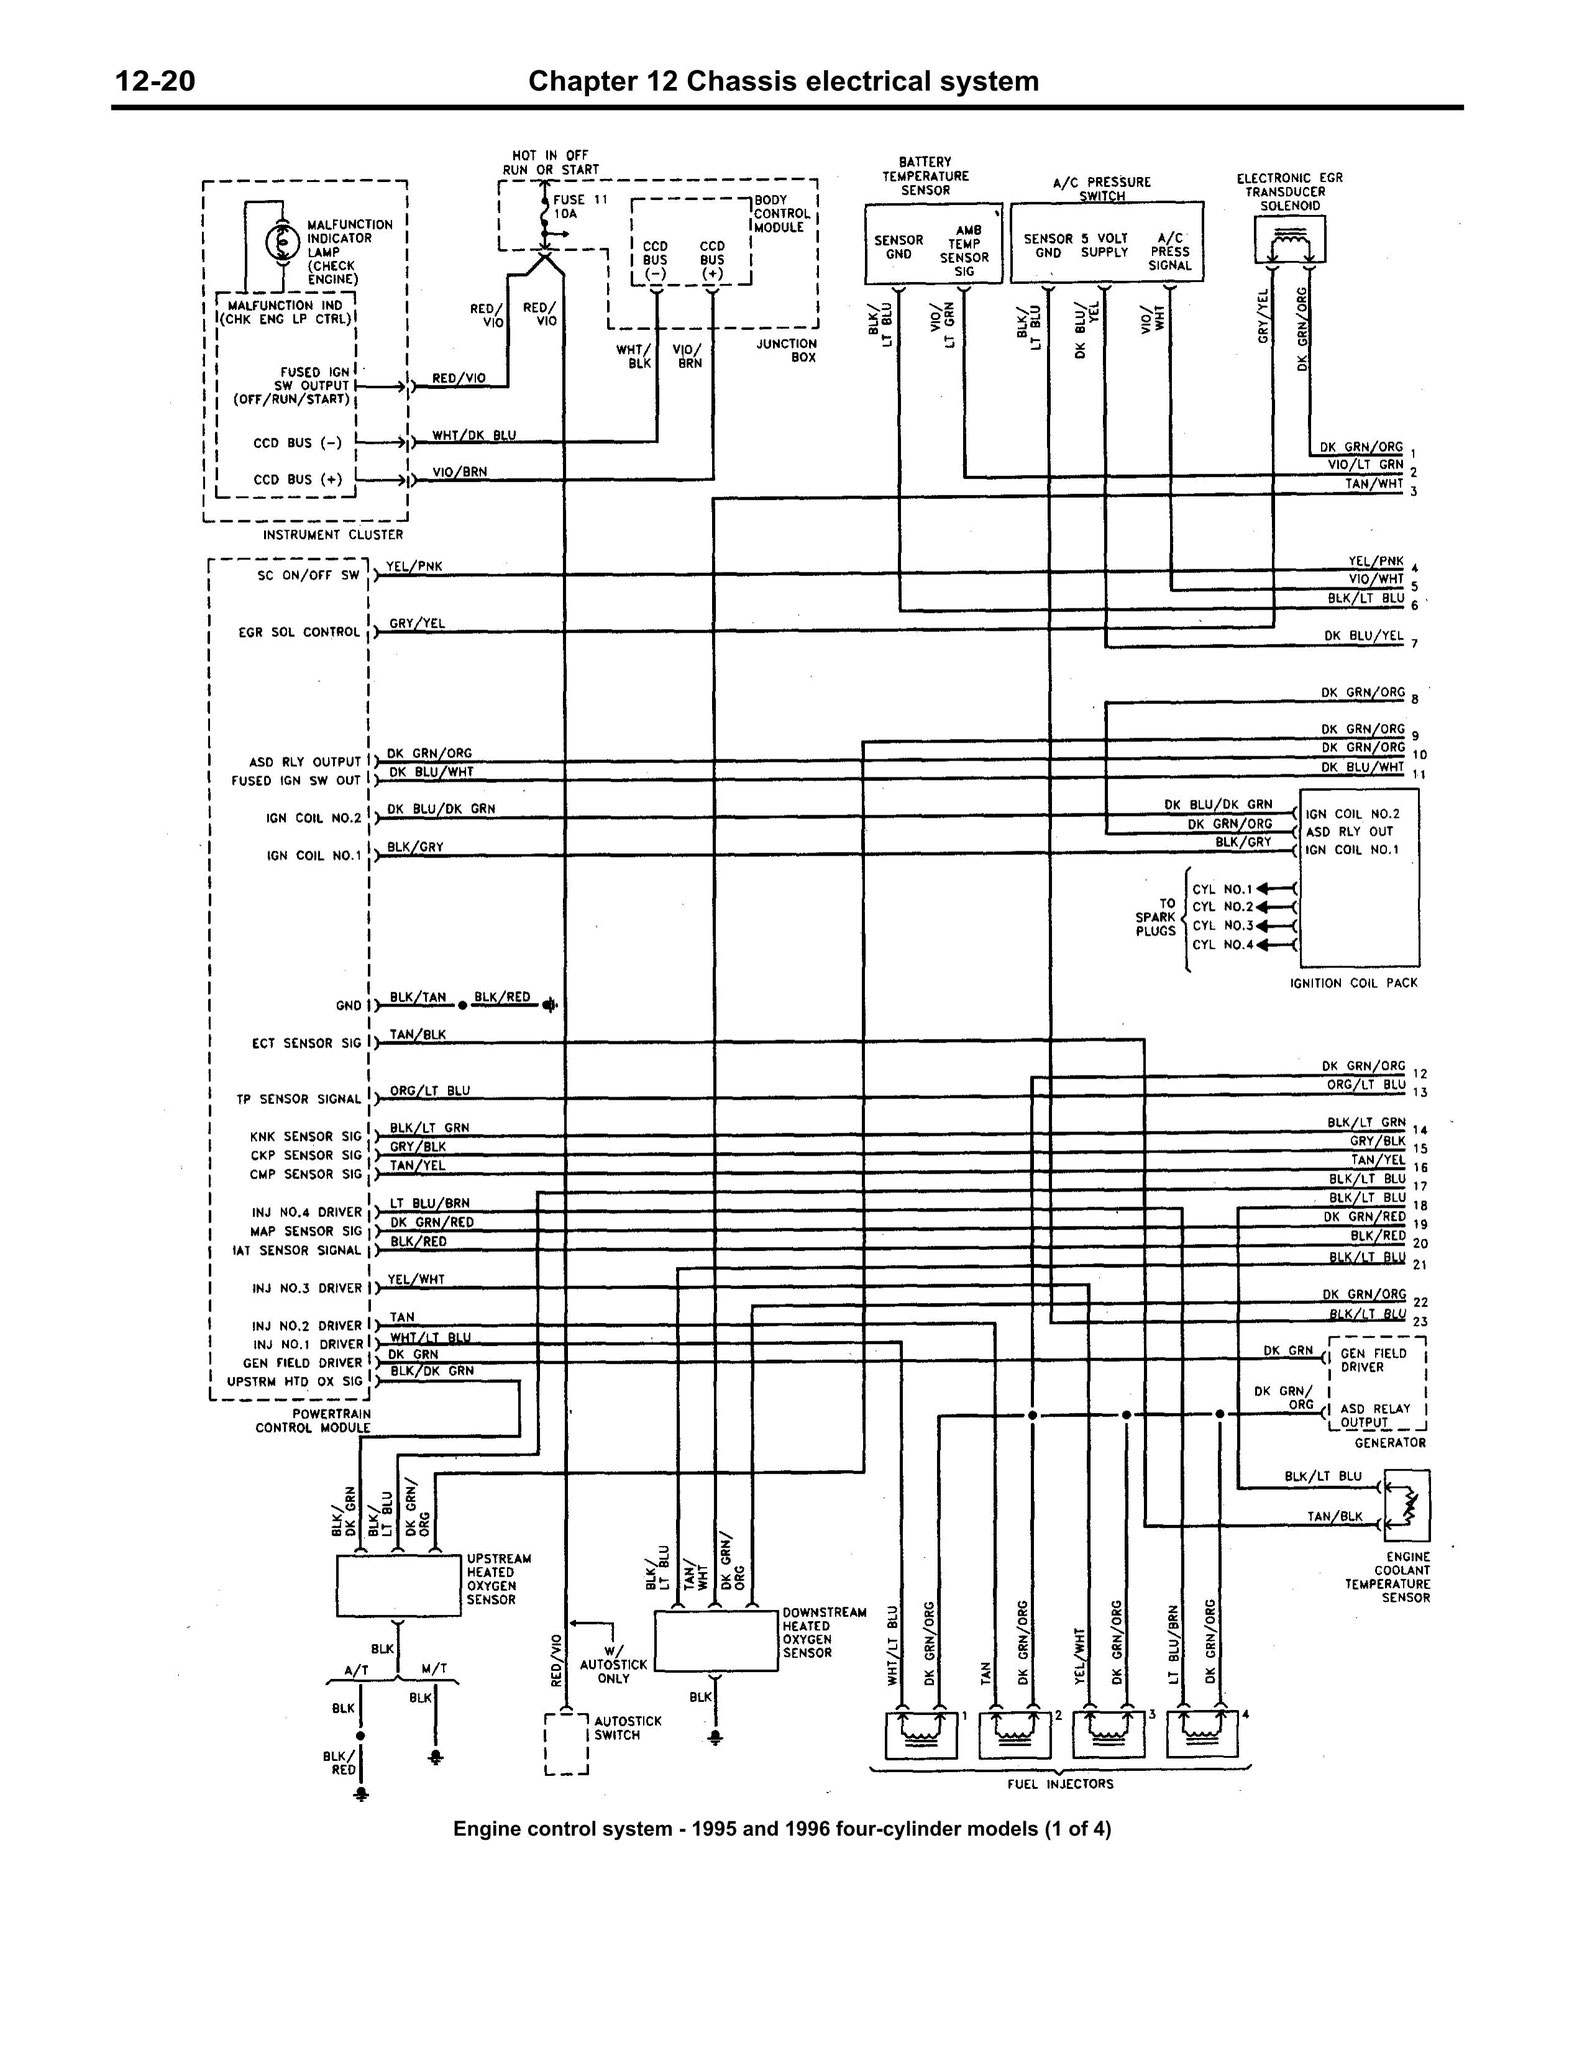 [SODI_2457]   Chrysler - Wiring Diagrams | 2001 Audi Tt Cooling Fan Wiring Diagram |  | Automotive manuals - Wiring Diagrams